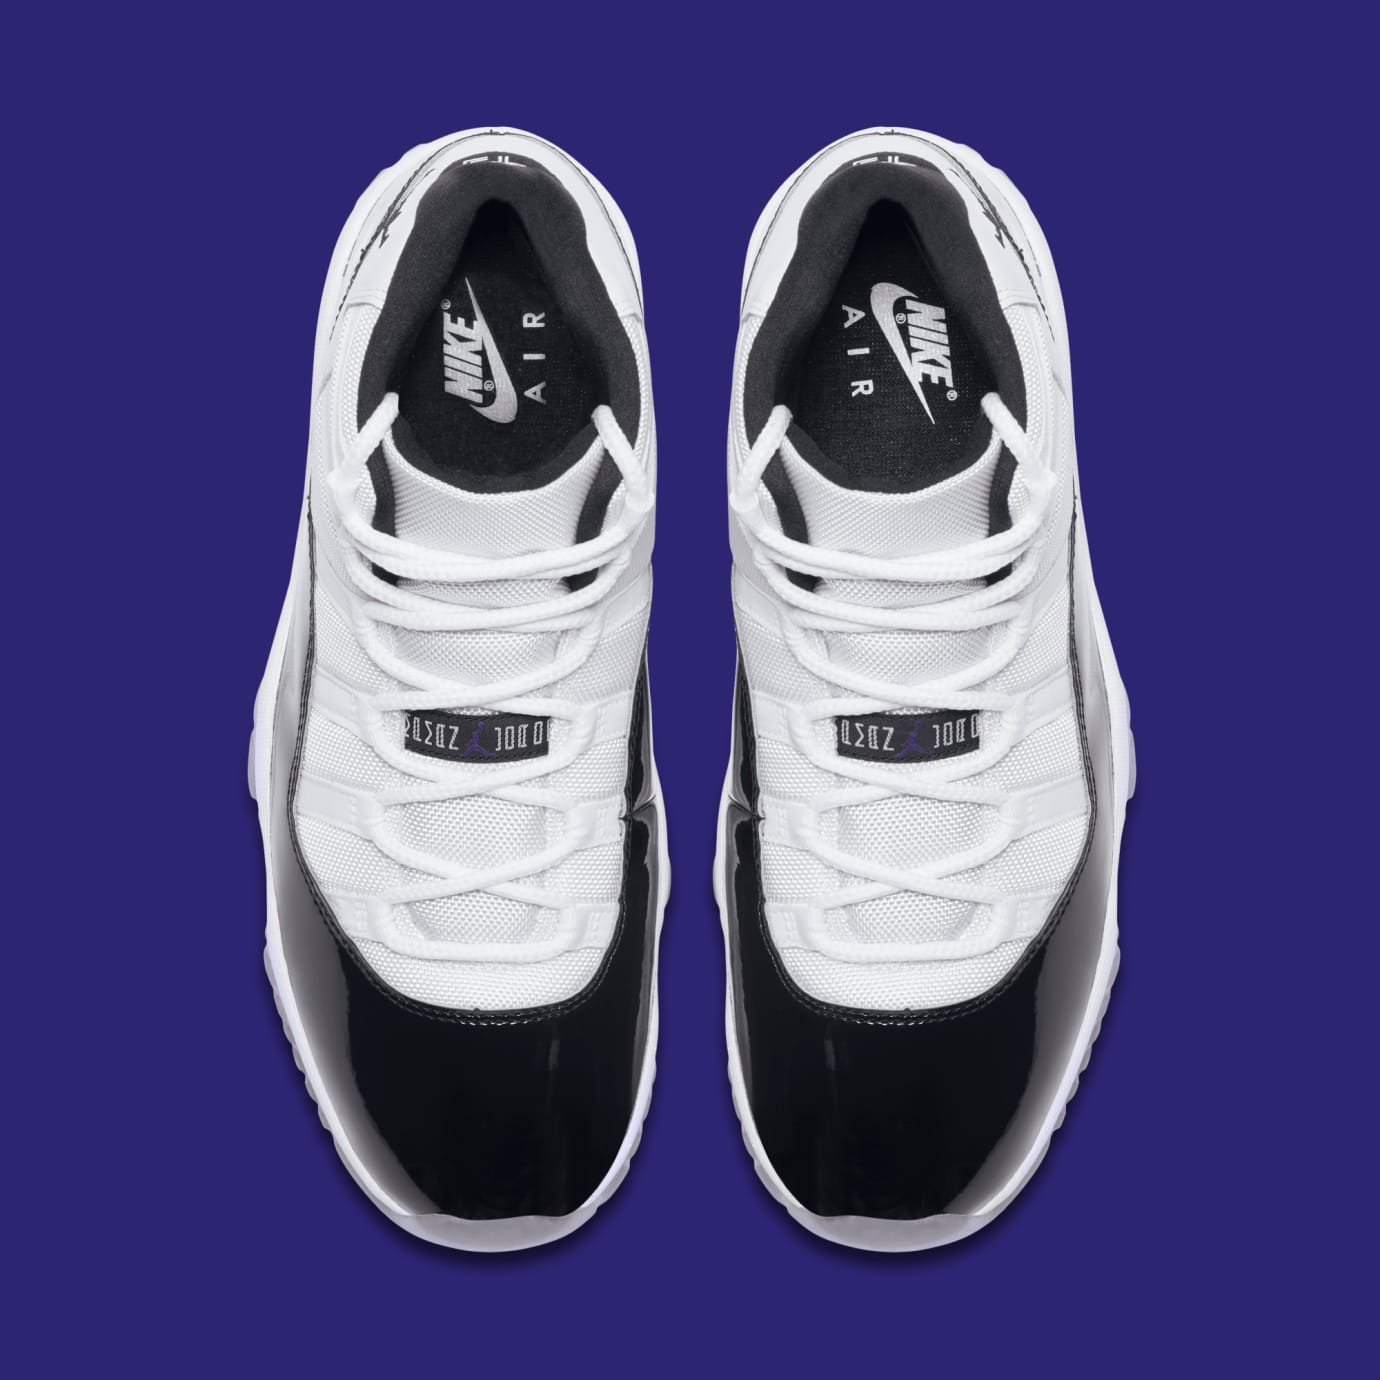 1f5335212e5d Image via Nike Air Jordan 11  Concord  378037-100 (Top)